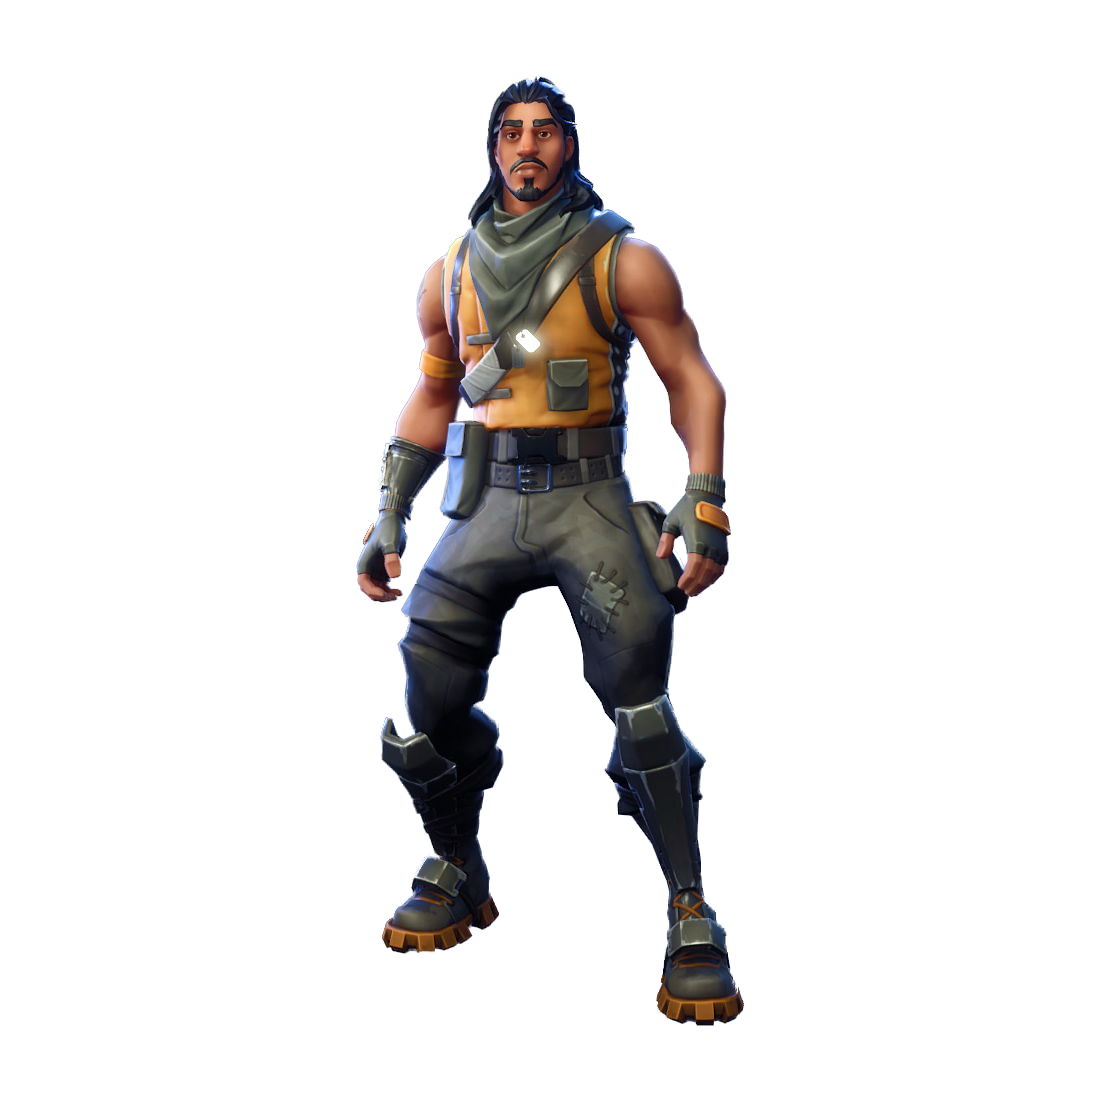 Fortnite Tracker PNG Image - PurePNG | Free transparent CC0 PNG